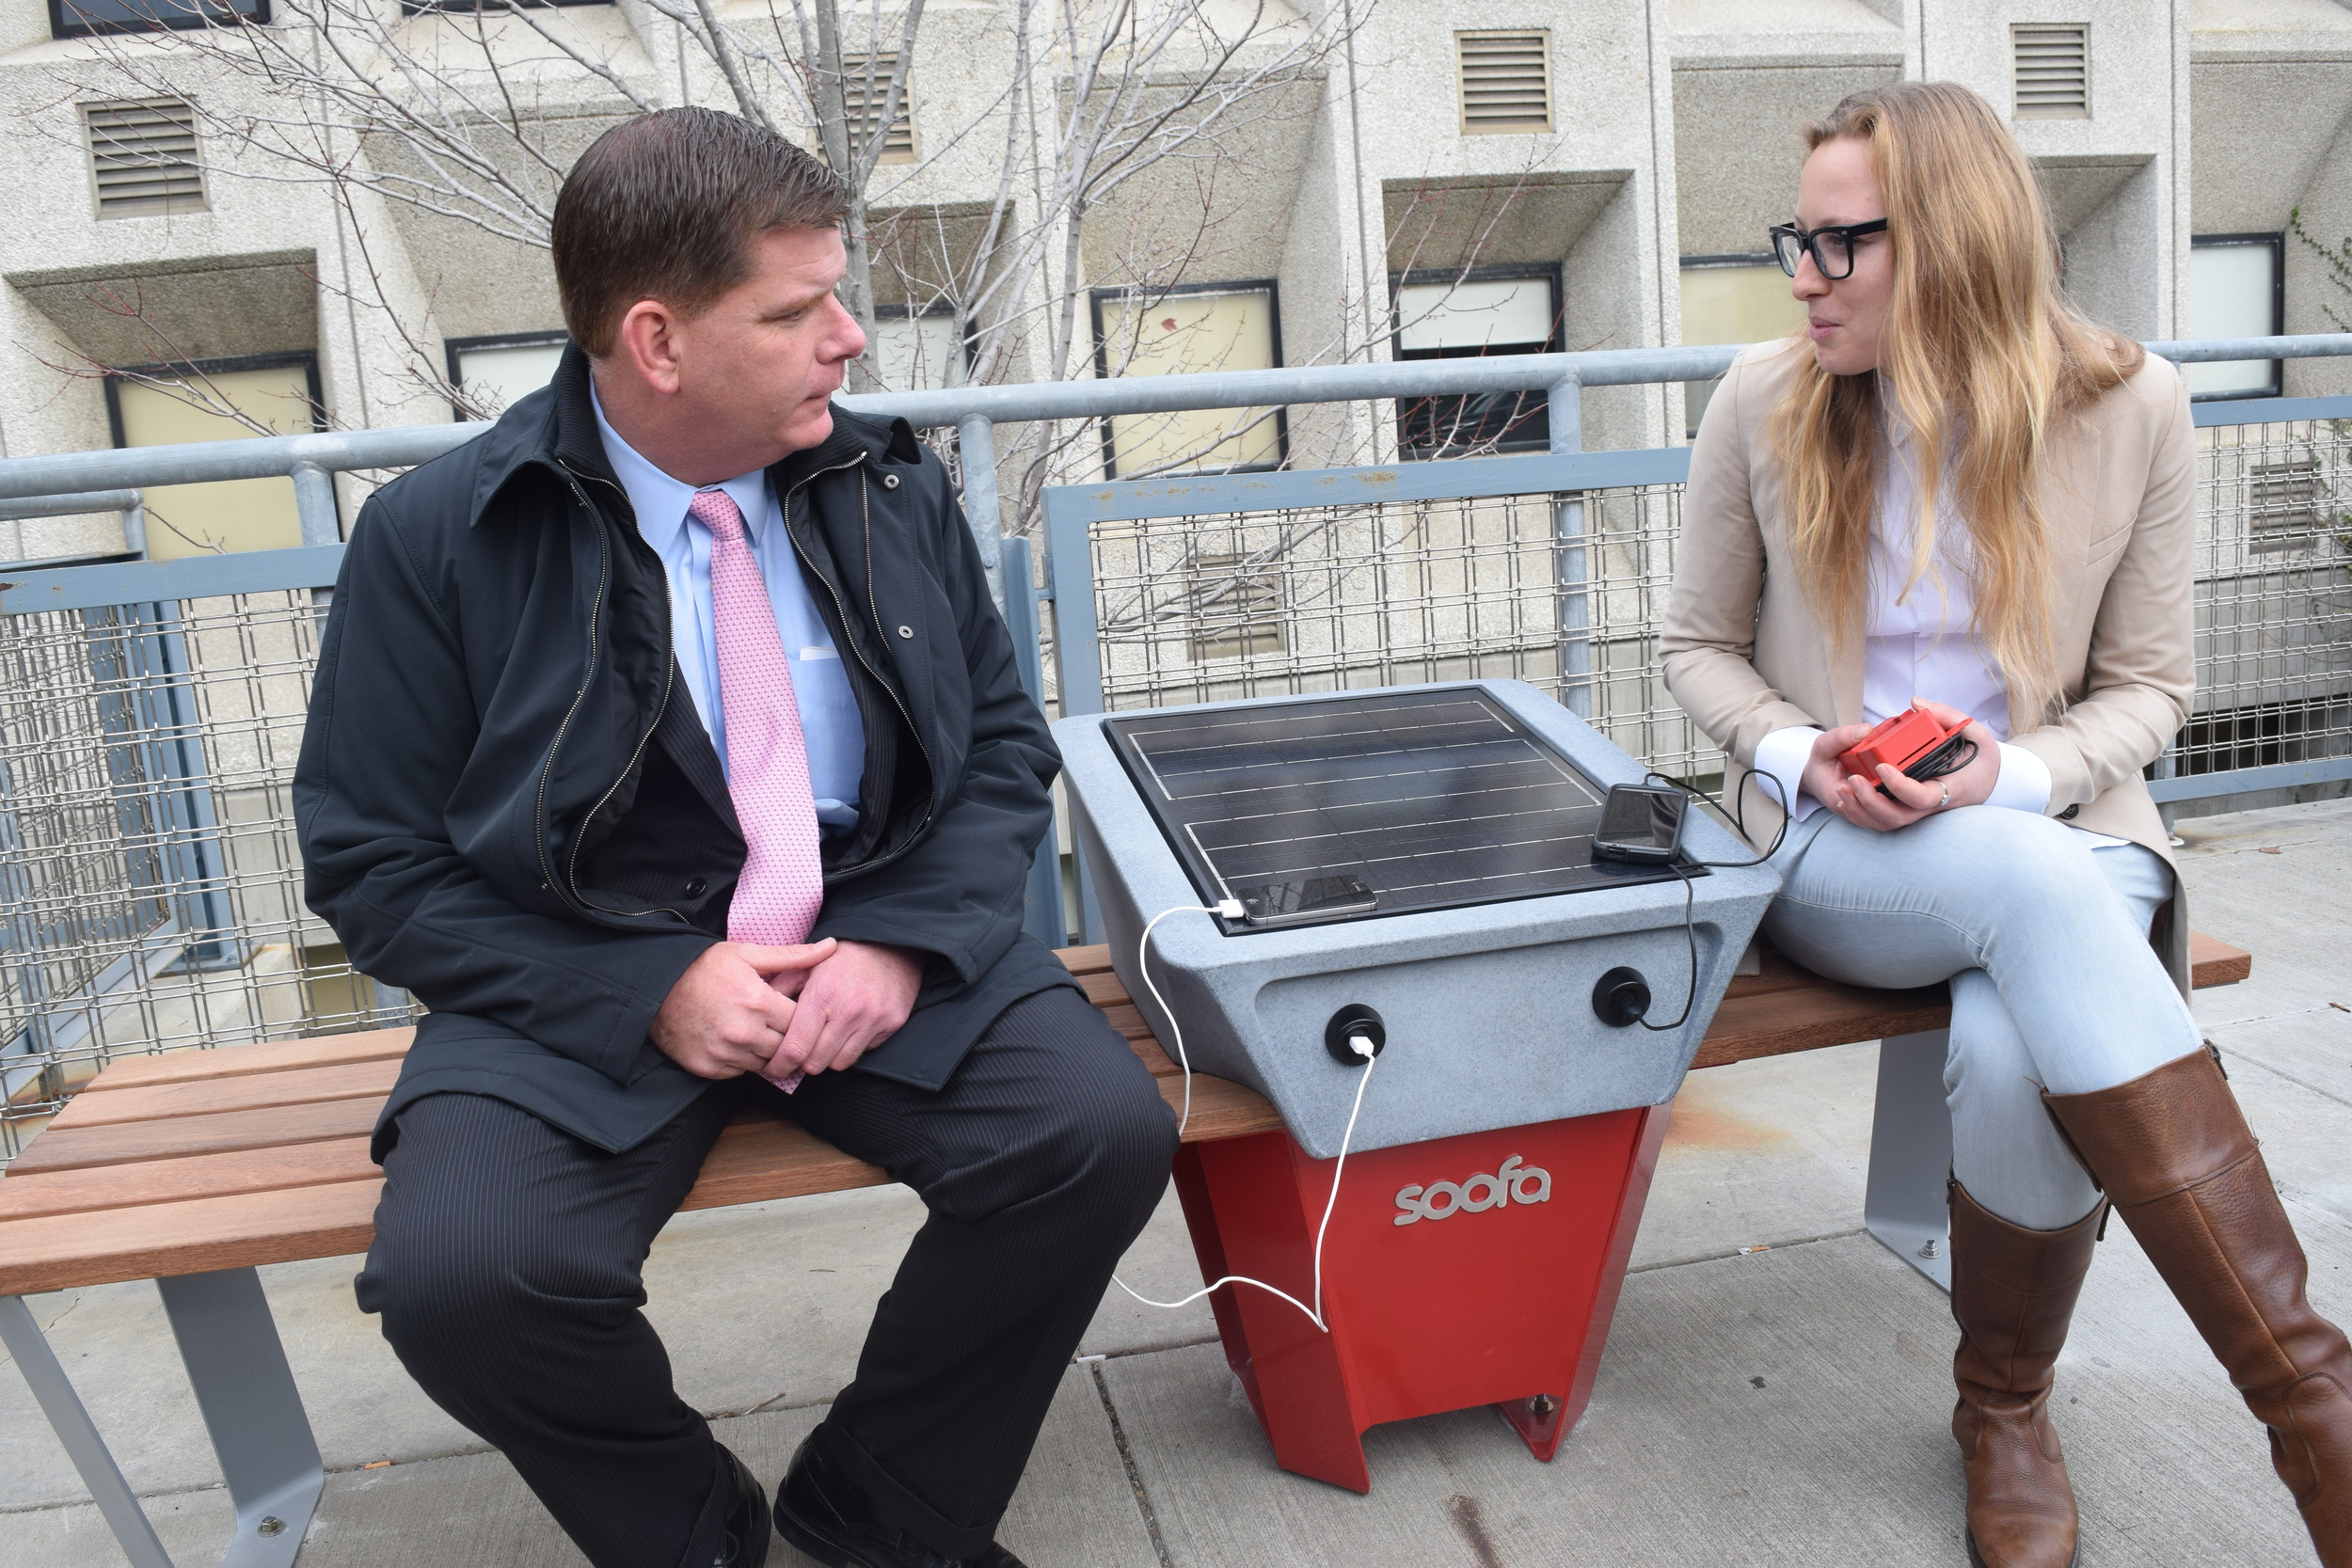 December 11: Mayor Marty Walsh and Soofa founder Sandra, chatting on the donated Soofa Bench. Sandra showed Mayor Walsh the new sensors Soofa has developed, housed in the nifty red box she is holding.